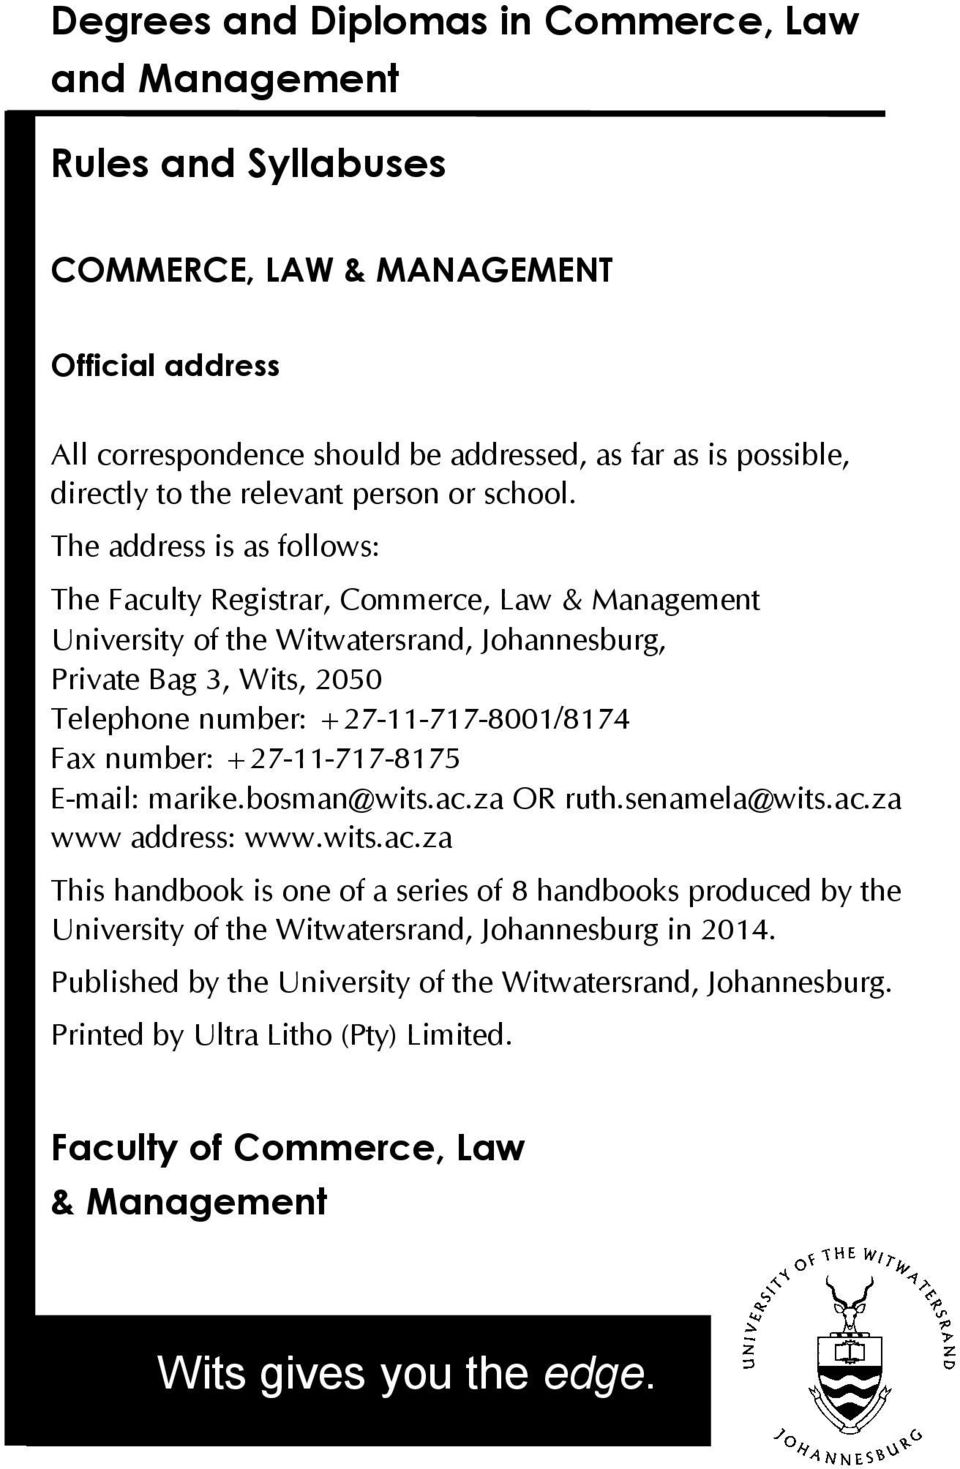 The address is as follows: The Faculty Registrar, Commerce, Law & Management University of the Witwatersrand, Johannesburg, Private Bag 3, Wits, 2050 Telephone number: +27-11-717-8001/8174 Fax